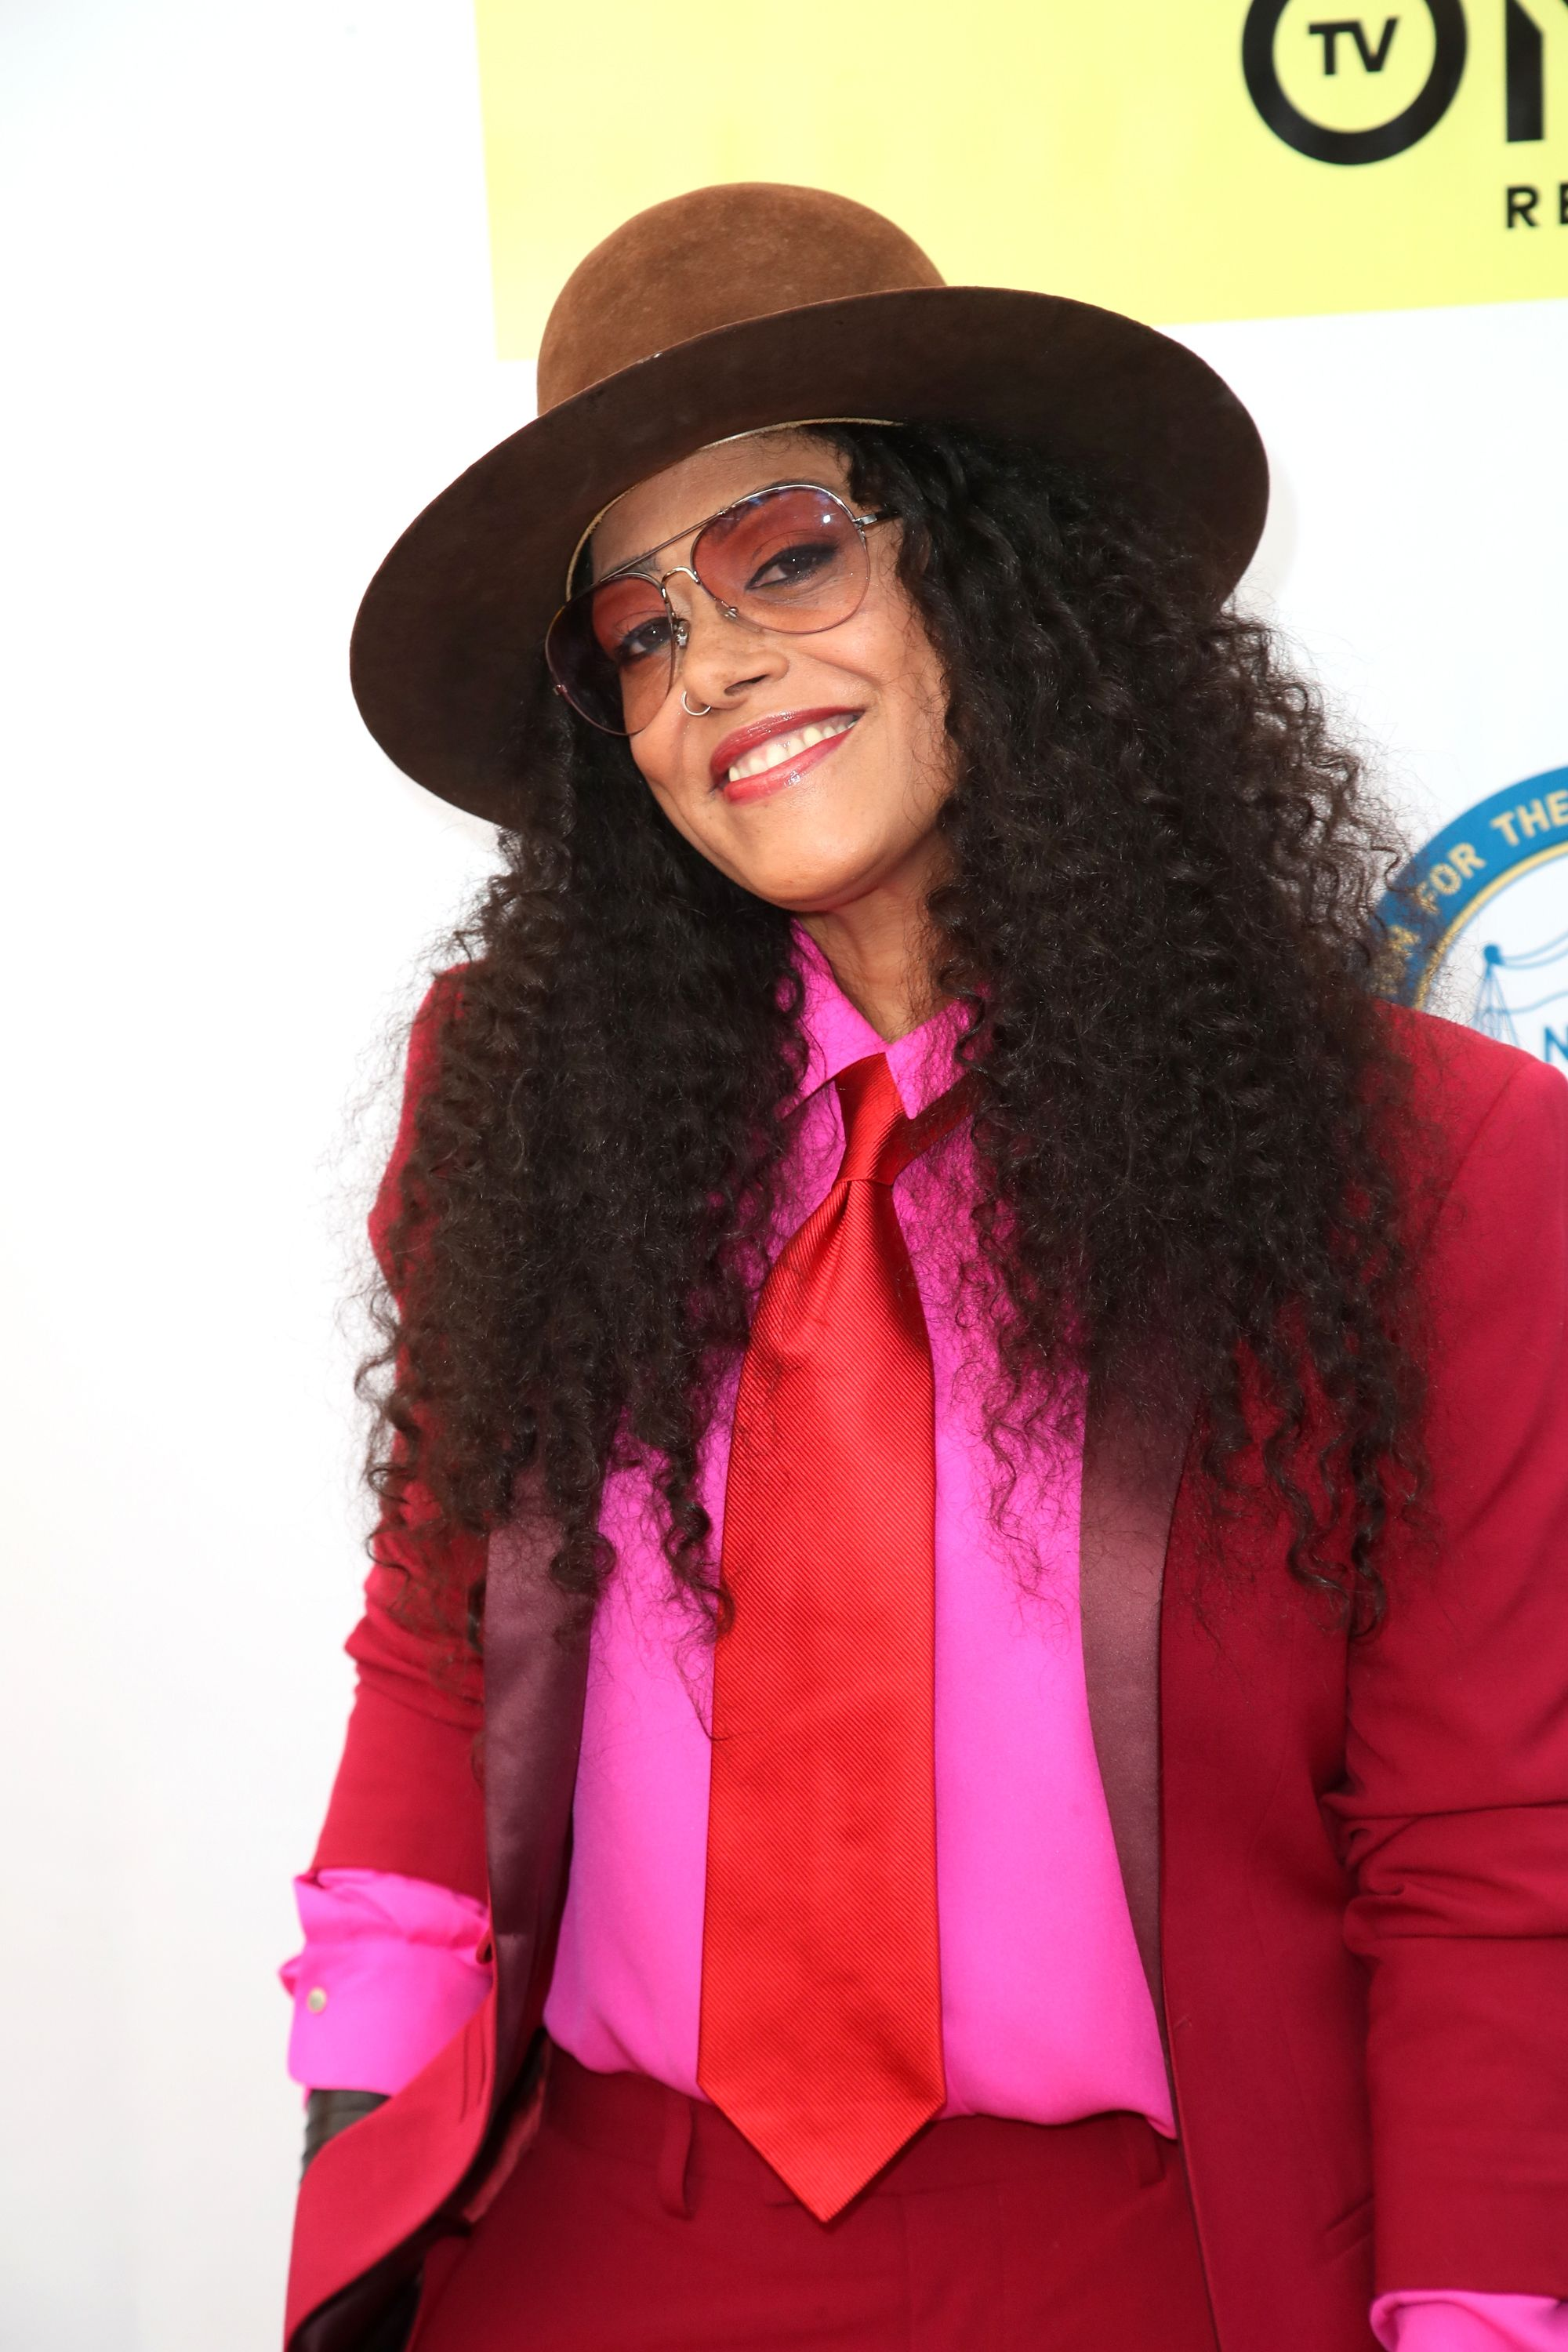 Voice actress Cree Summer at the NAACP Image Awards on February 11, 2017 in California. | Photo: Getty Images